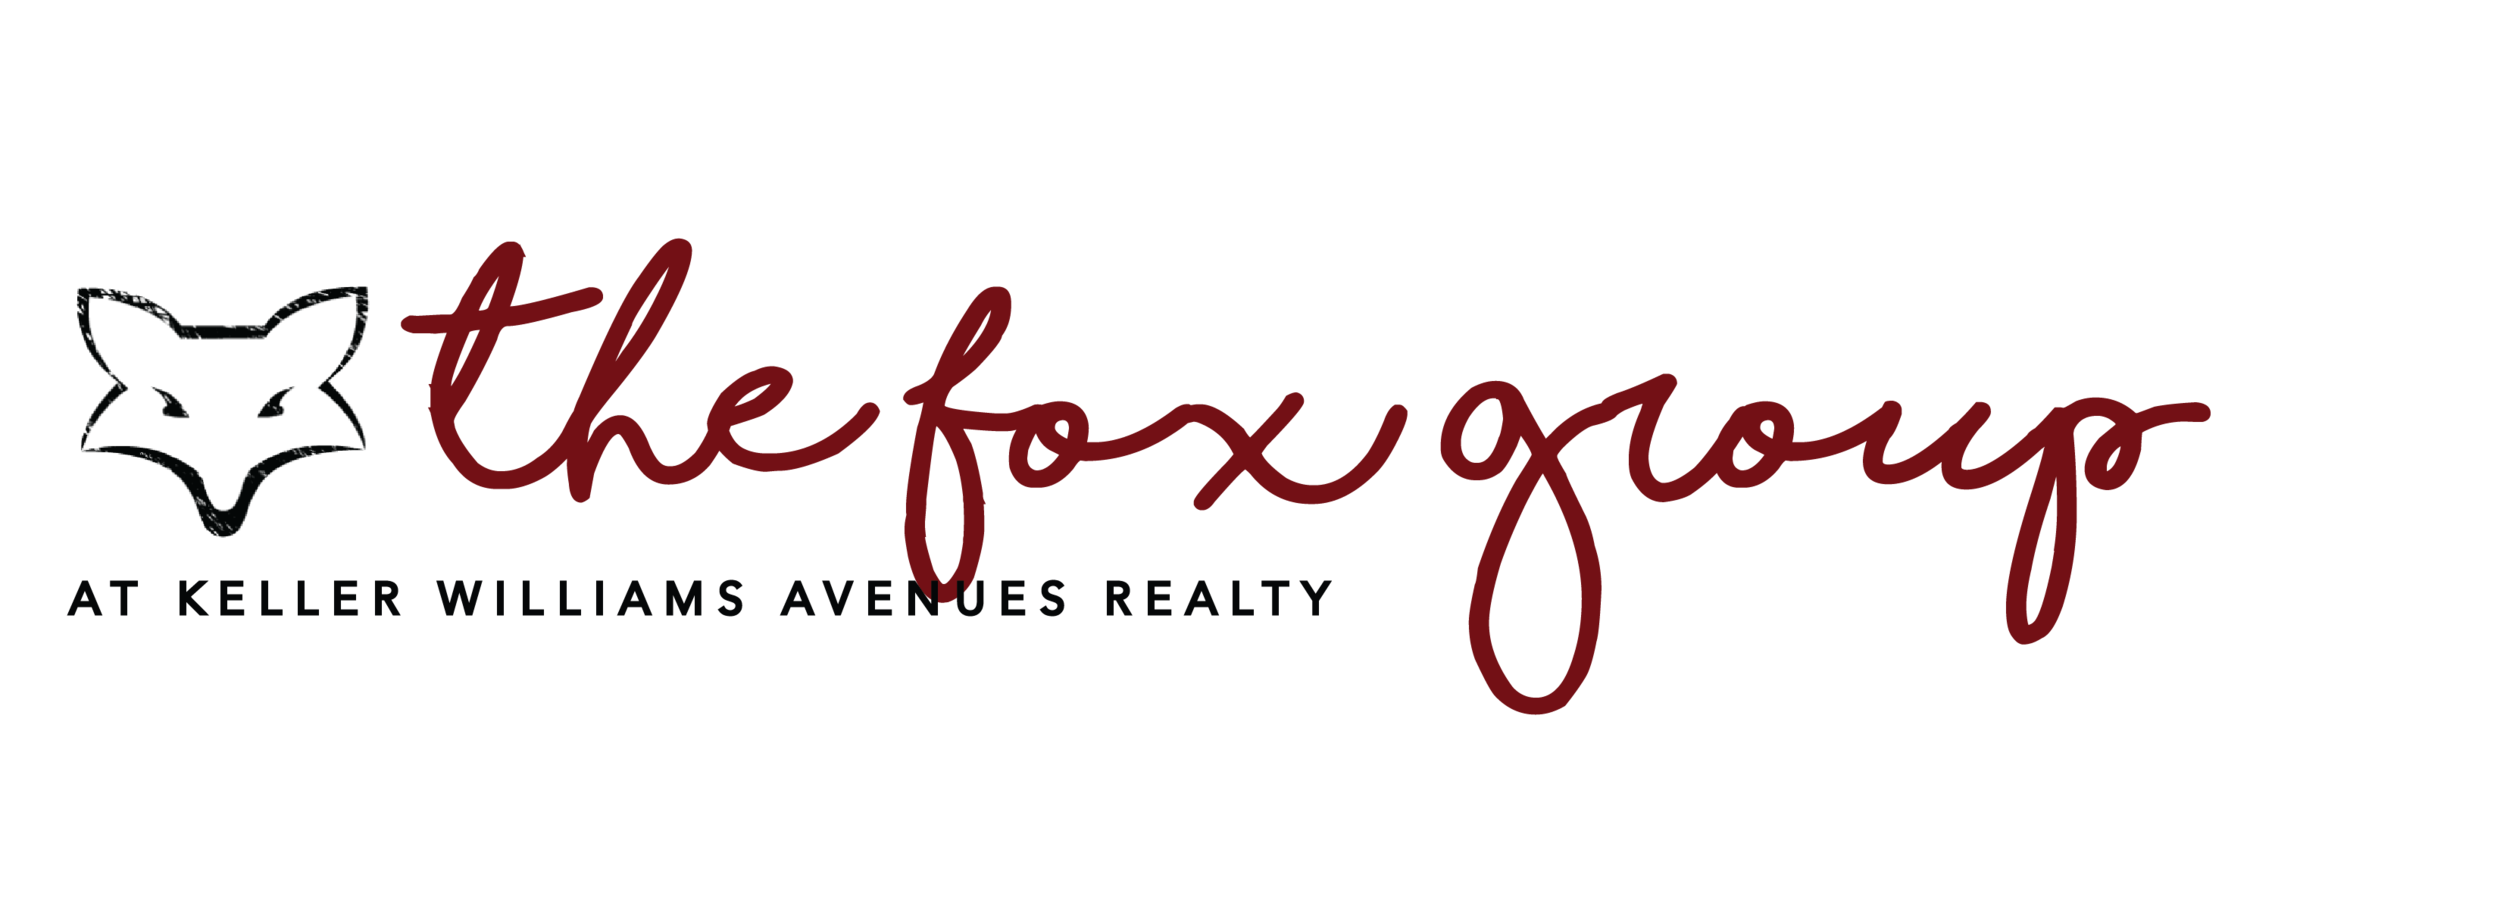 thefoxgroup-01.png